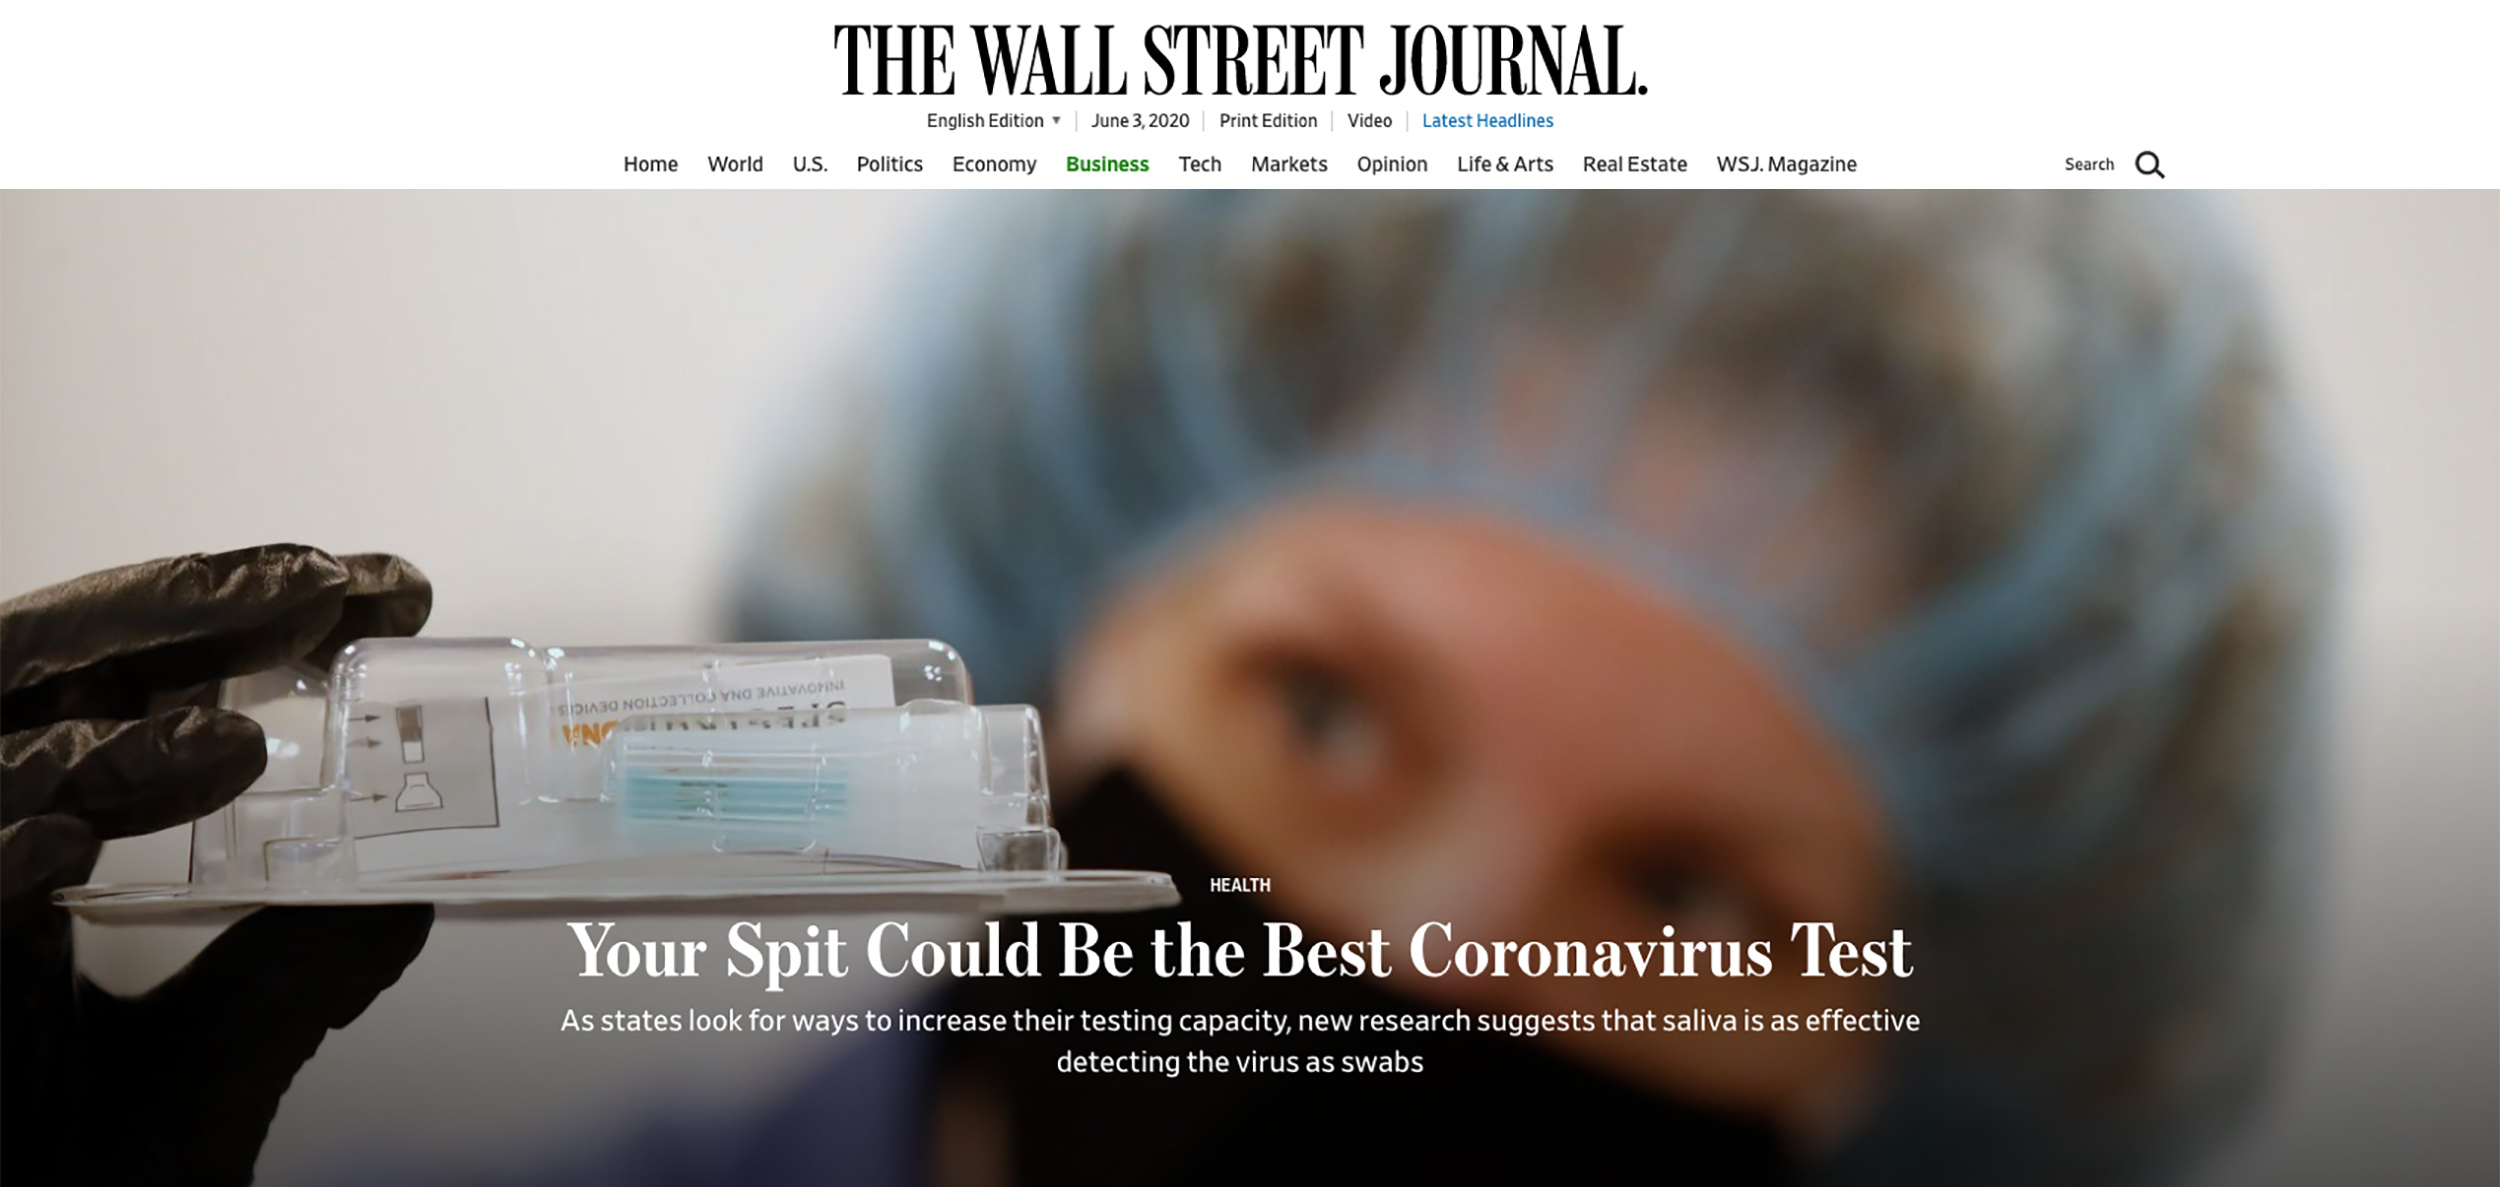 The Wall Street Journal-Could Spit be the Best Coronavirus Test